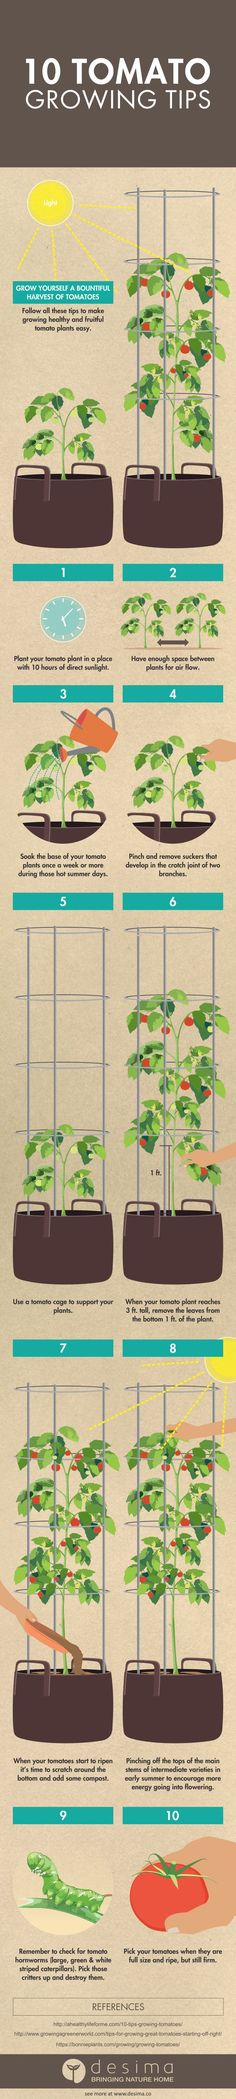 Follow all these tips to make growing healthy and fruitful tomato plants  easy.    1. Plant your tomato plant in a place with 10 hours of direct sunlight.  2. Have enough space between plants for air flow.  3. Soak the base of your tomato plants once a week or more during those hot  summer days.  4. Pinch and remove suckers that develop in the crotch joint of two  branches.  5. Use a tomato cage to support your plants.  6. When your tomato plant reaches 3 ft. tall, remove the leaves from…